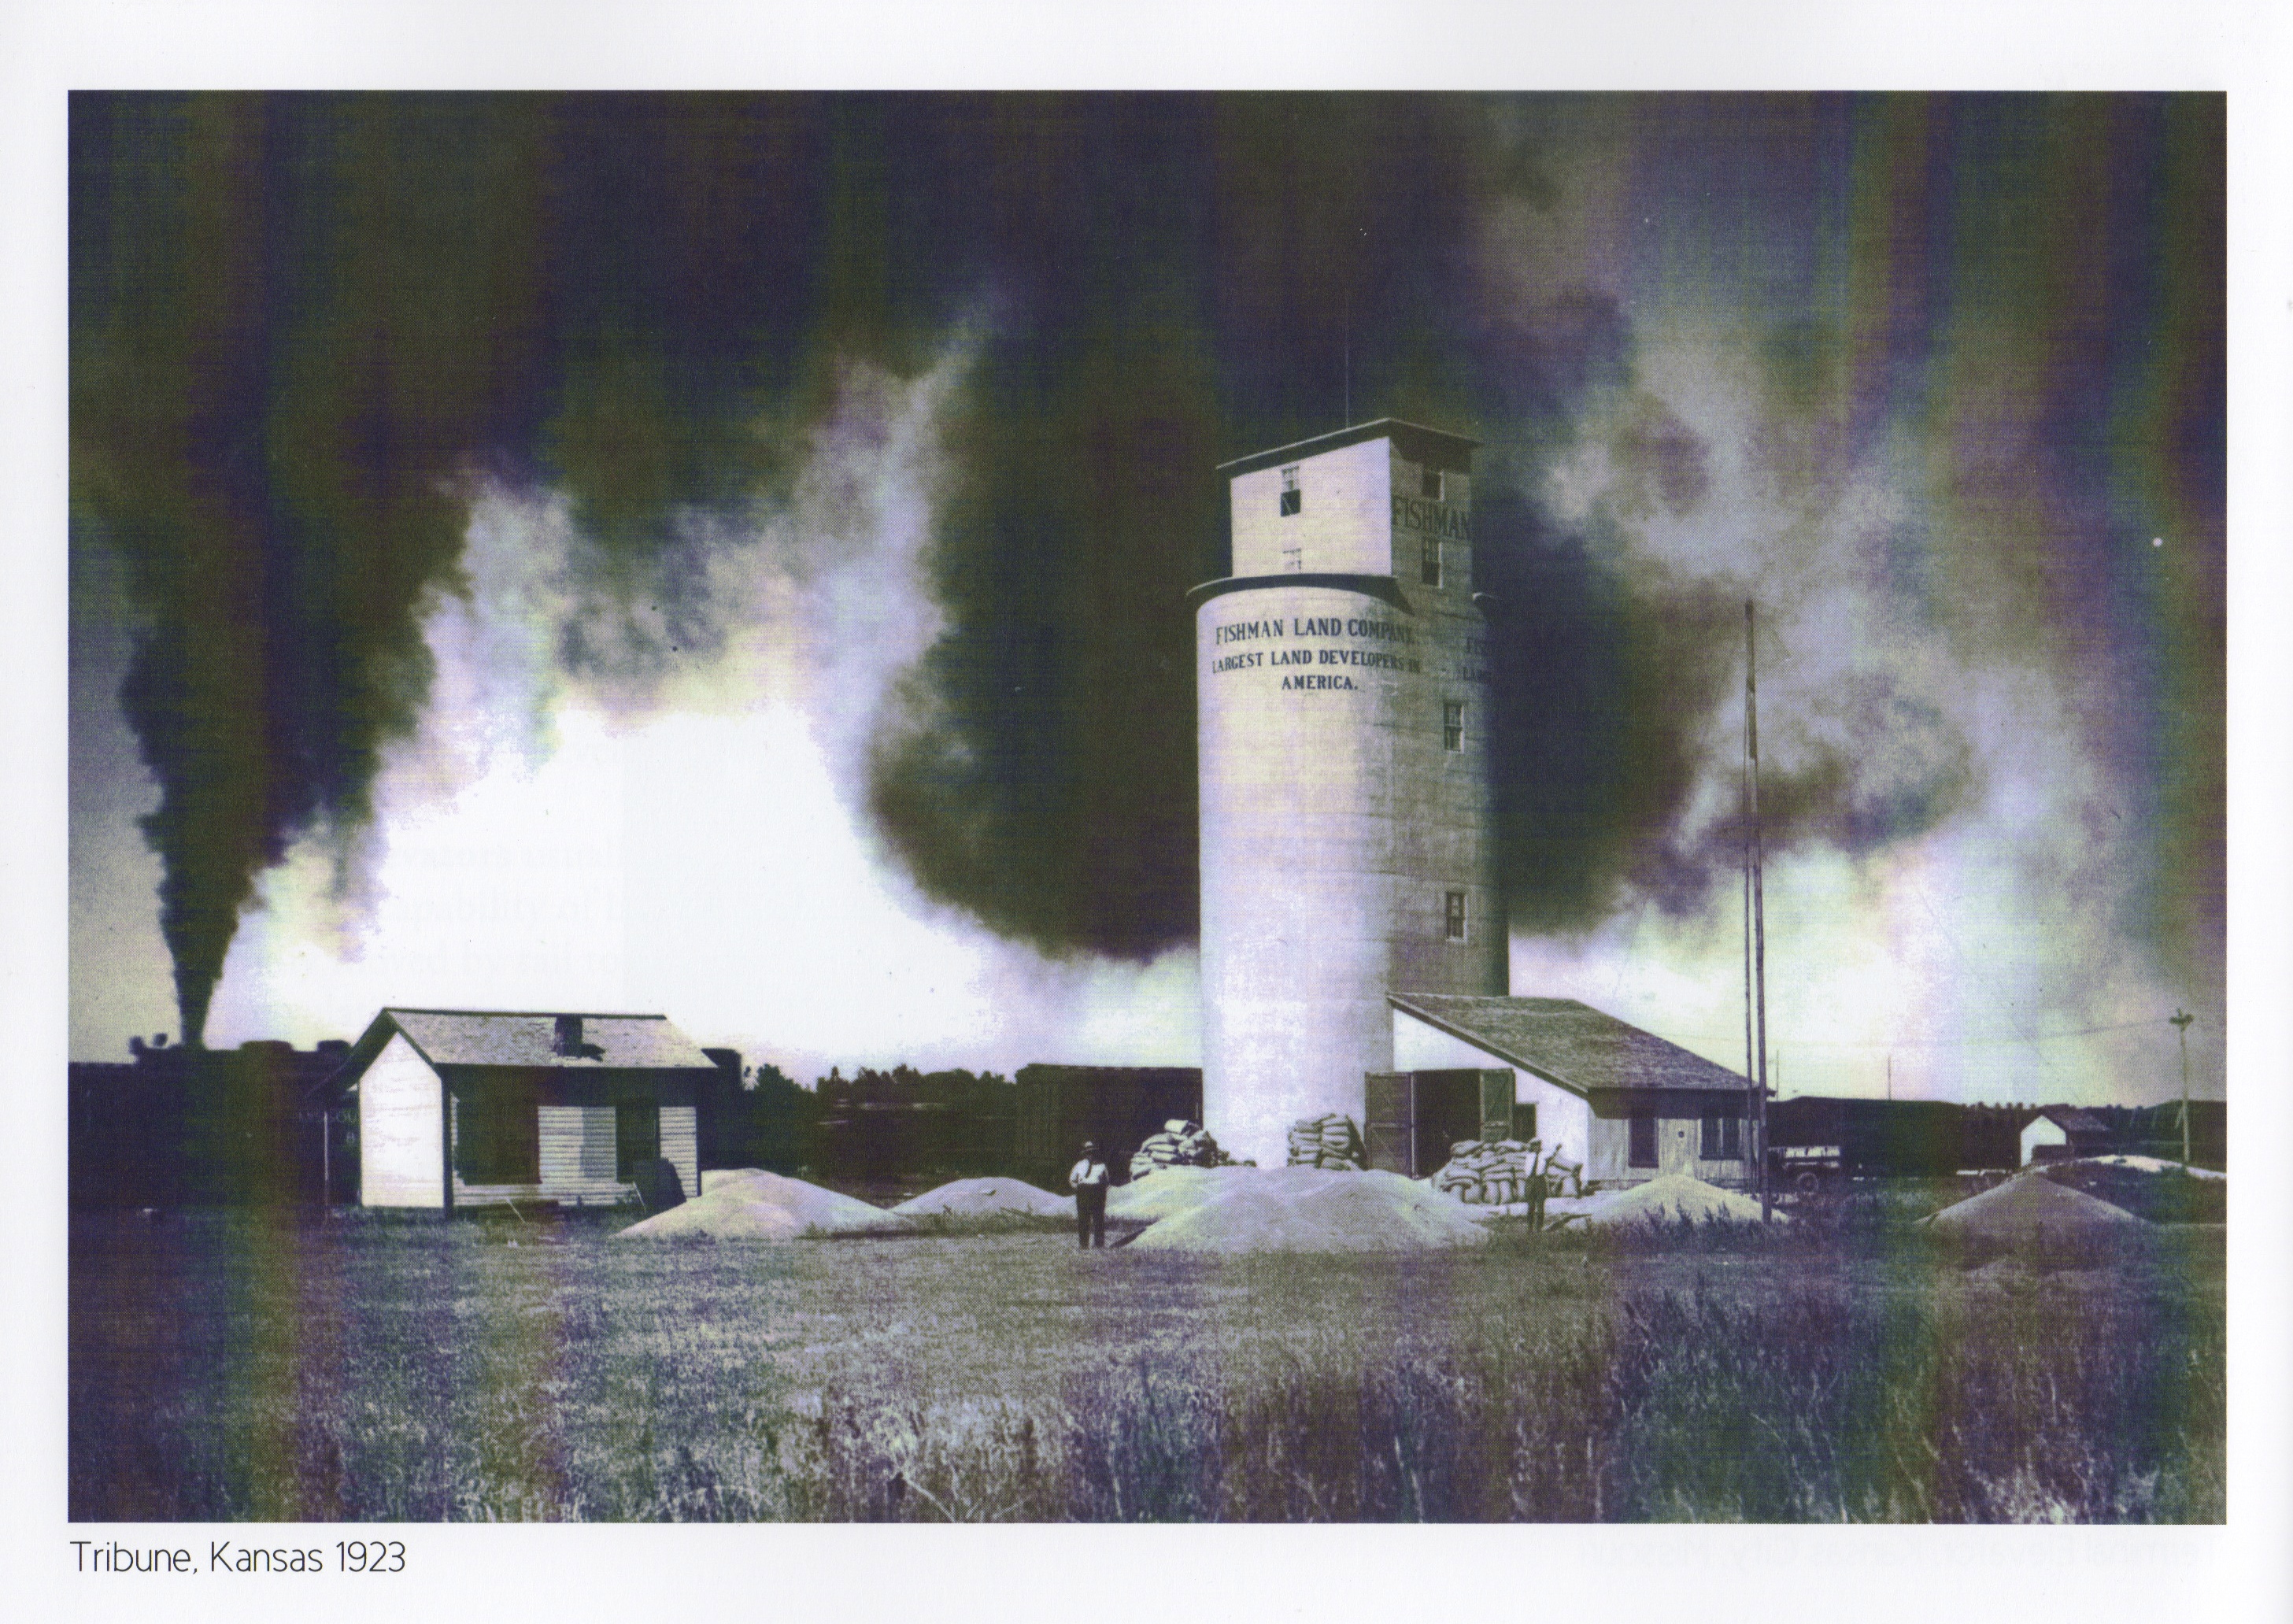 Photo from The American Grain Elevator: Function & Form, by Linda Laird, courtesy of Grain Elevator Press.